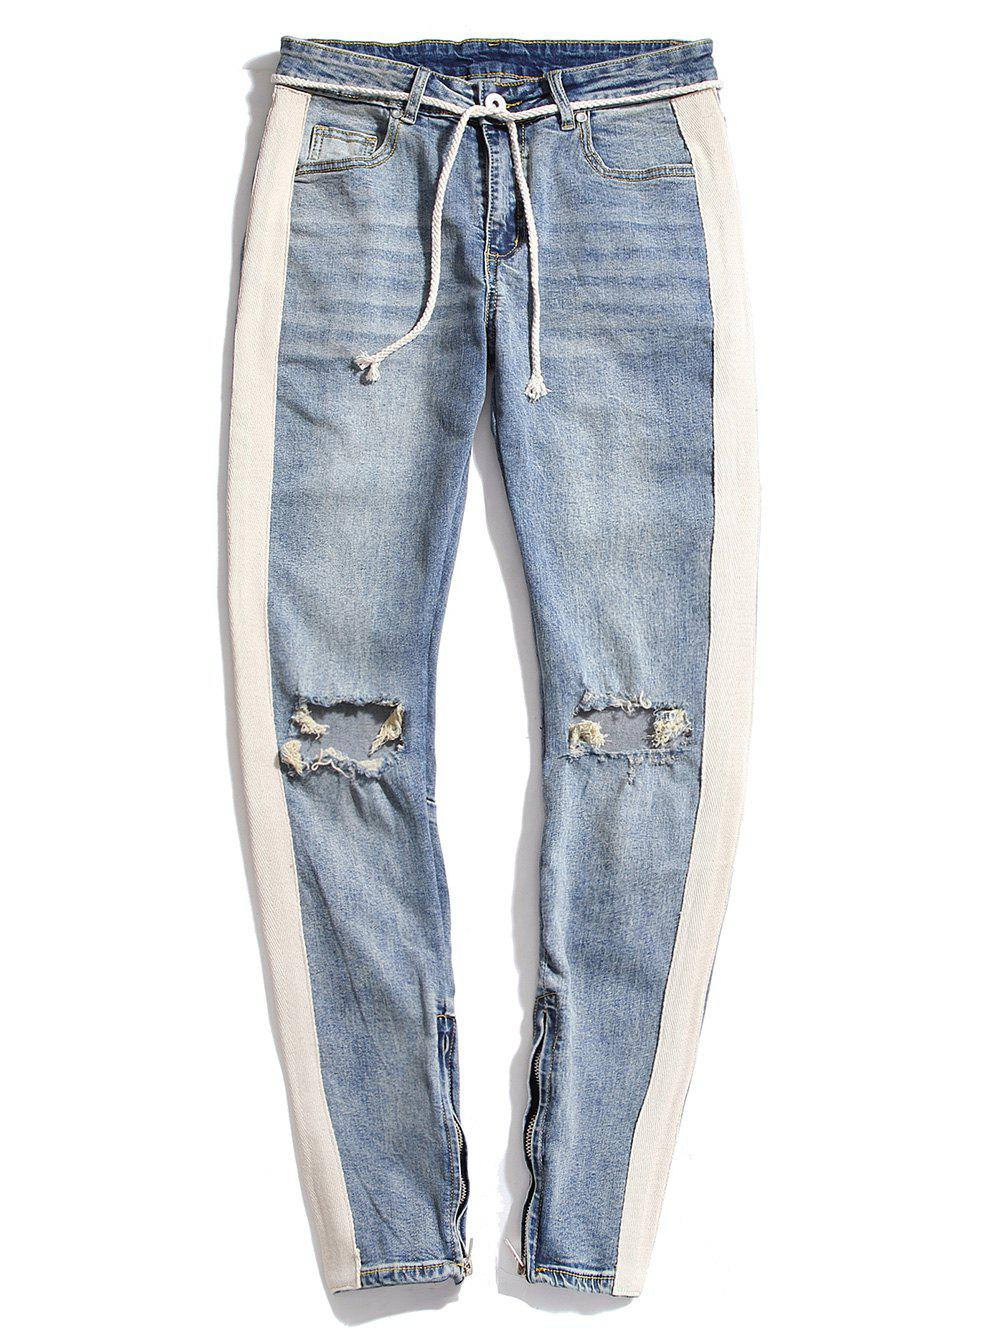 Colorblock Patchwork Destroy Wash Jeans - LIGHT BLUE M